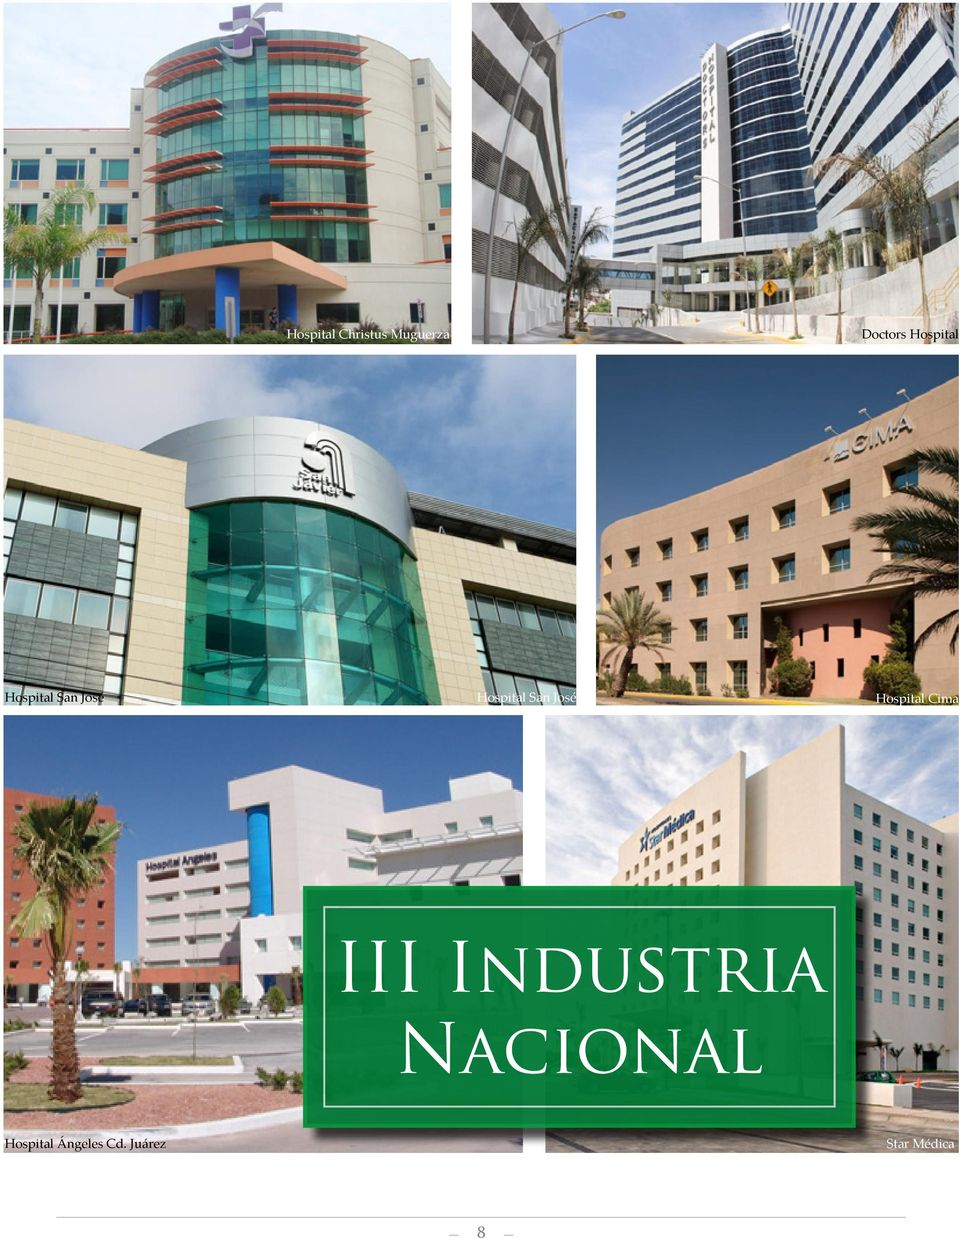 José Hospital Cima III Industria